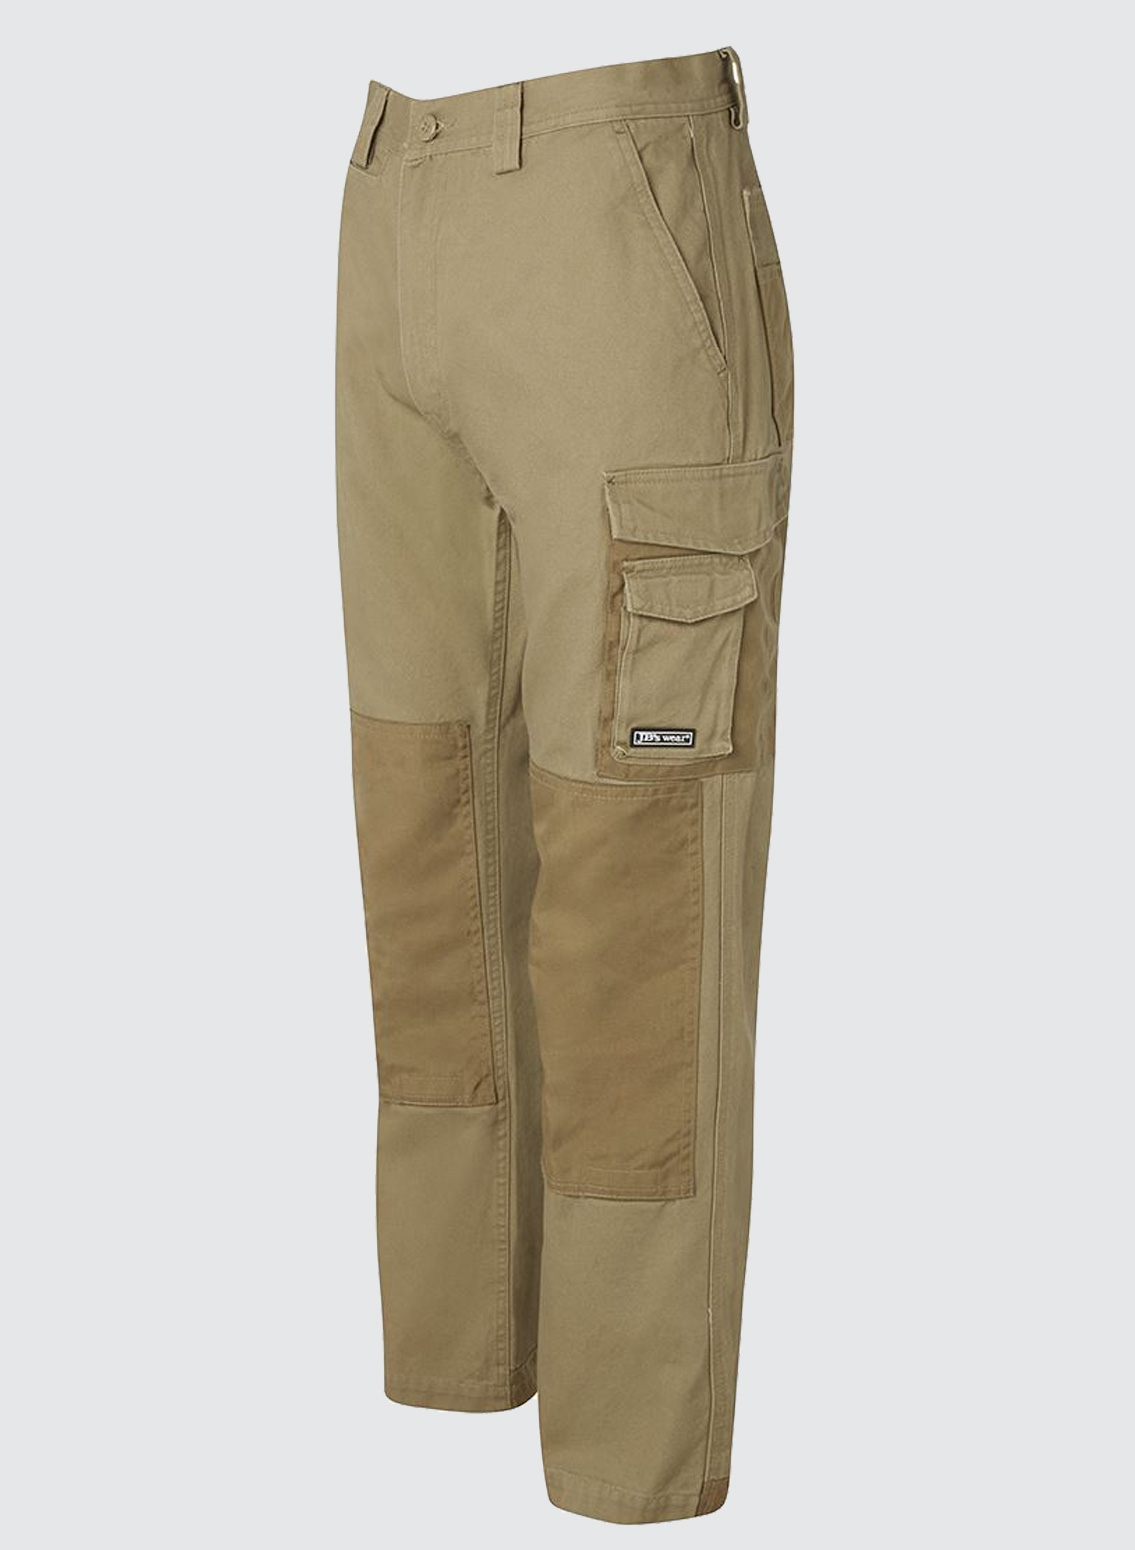 Shop for canvas cargo pants online at Target. Free shipping on purchases over $35 and save 5% every day with your Target REDcard.